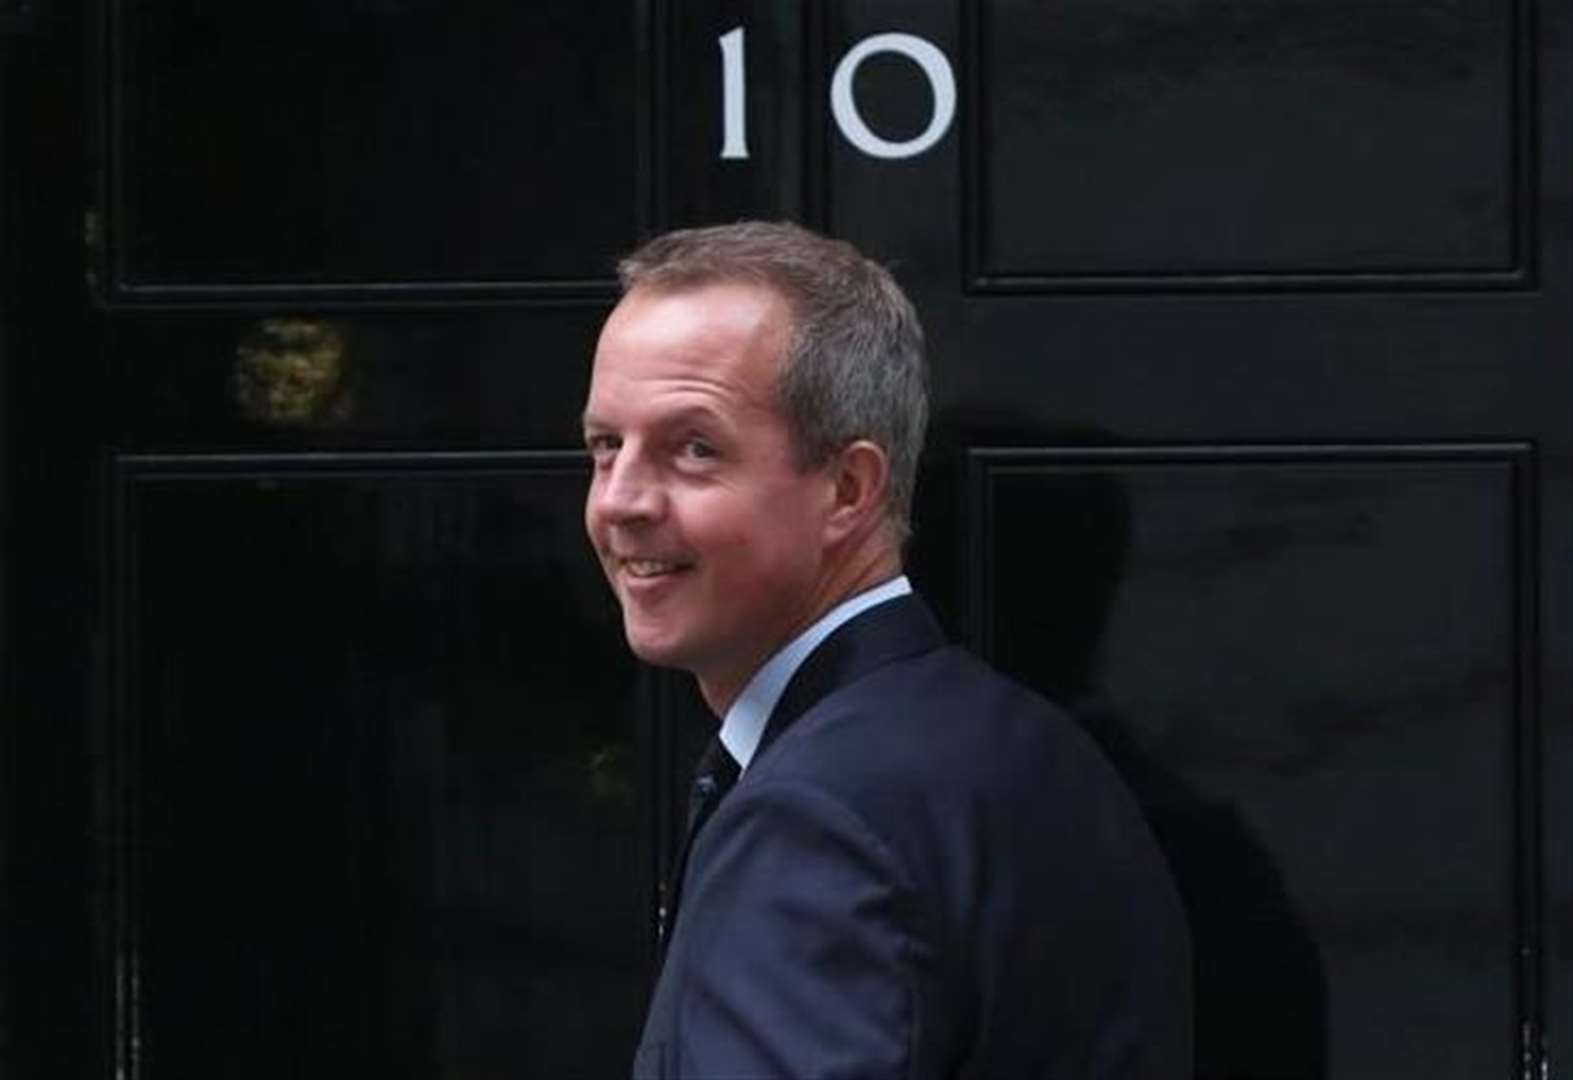 Party AGM 'very hostile' against absent Stamford MP Nick Boles